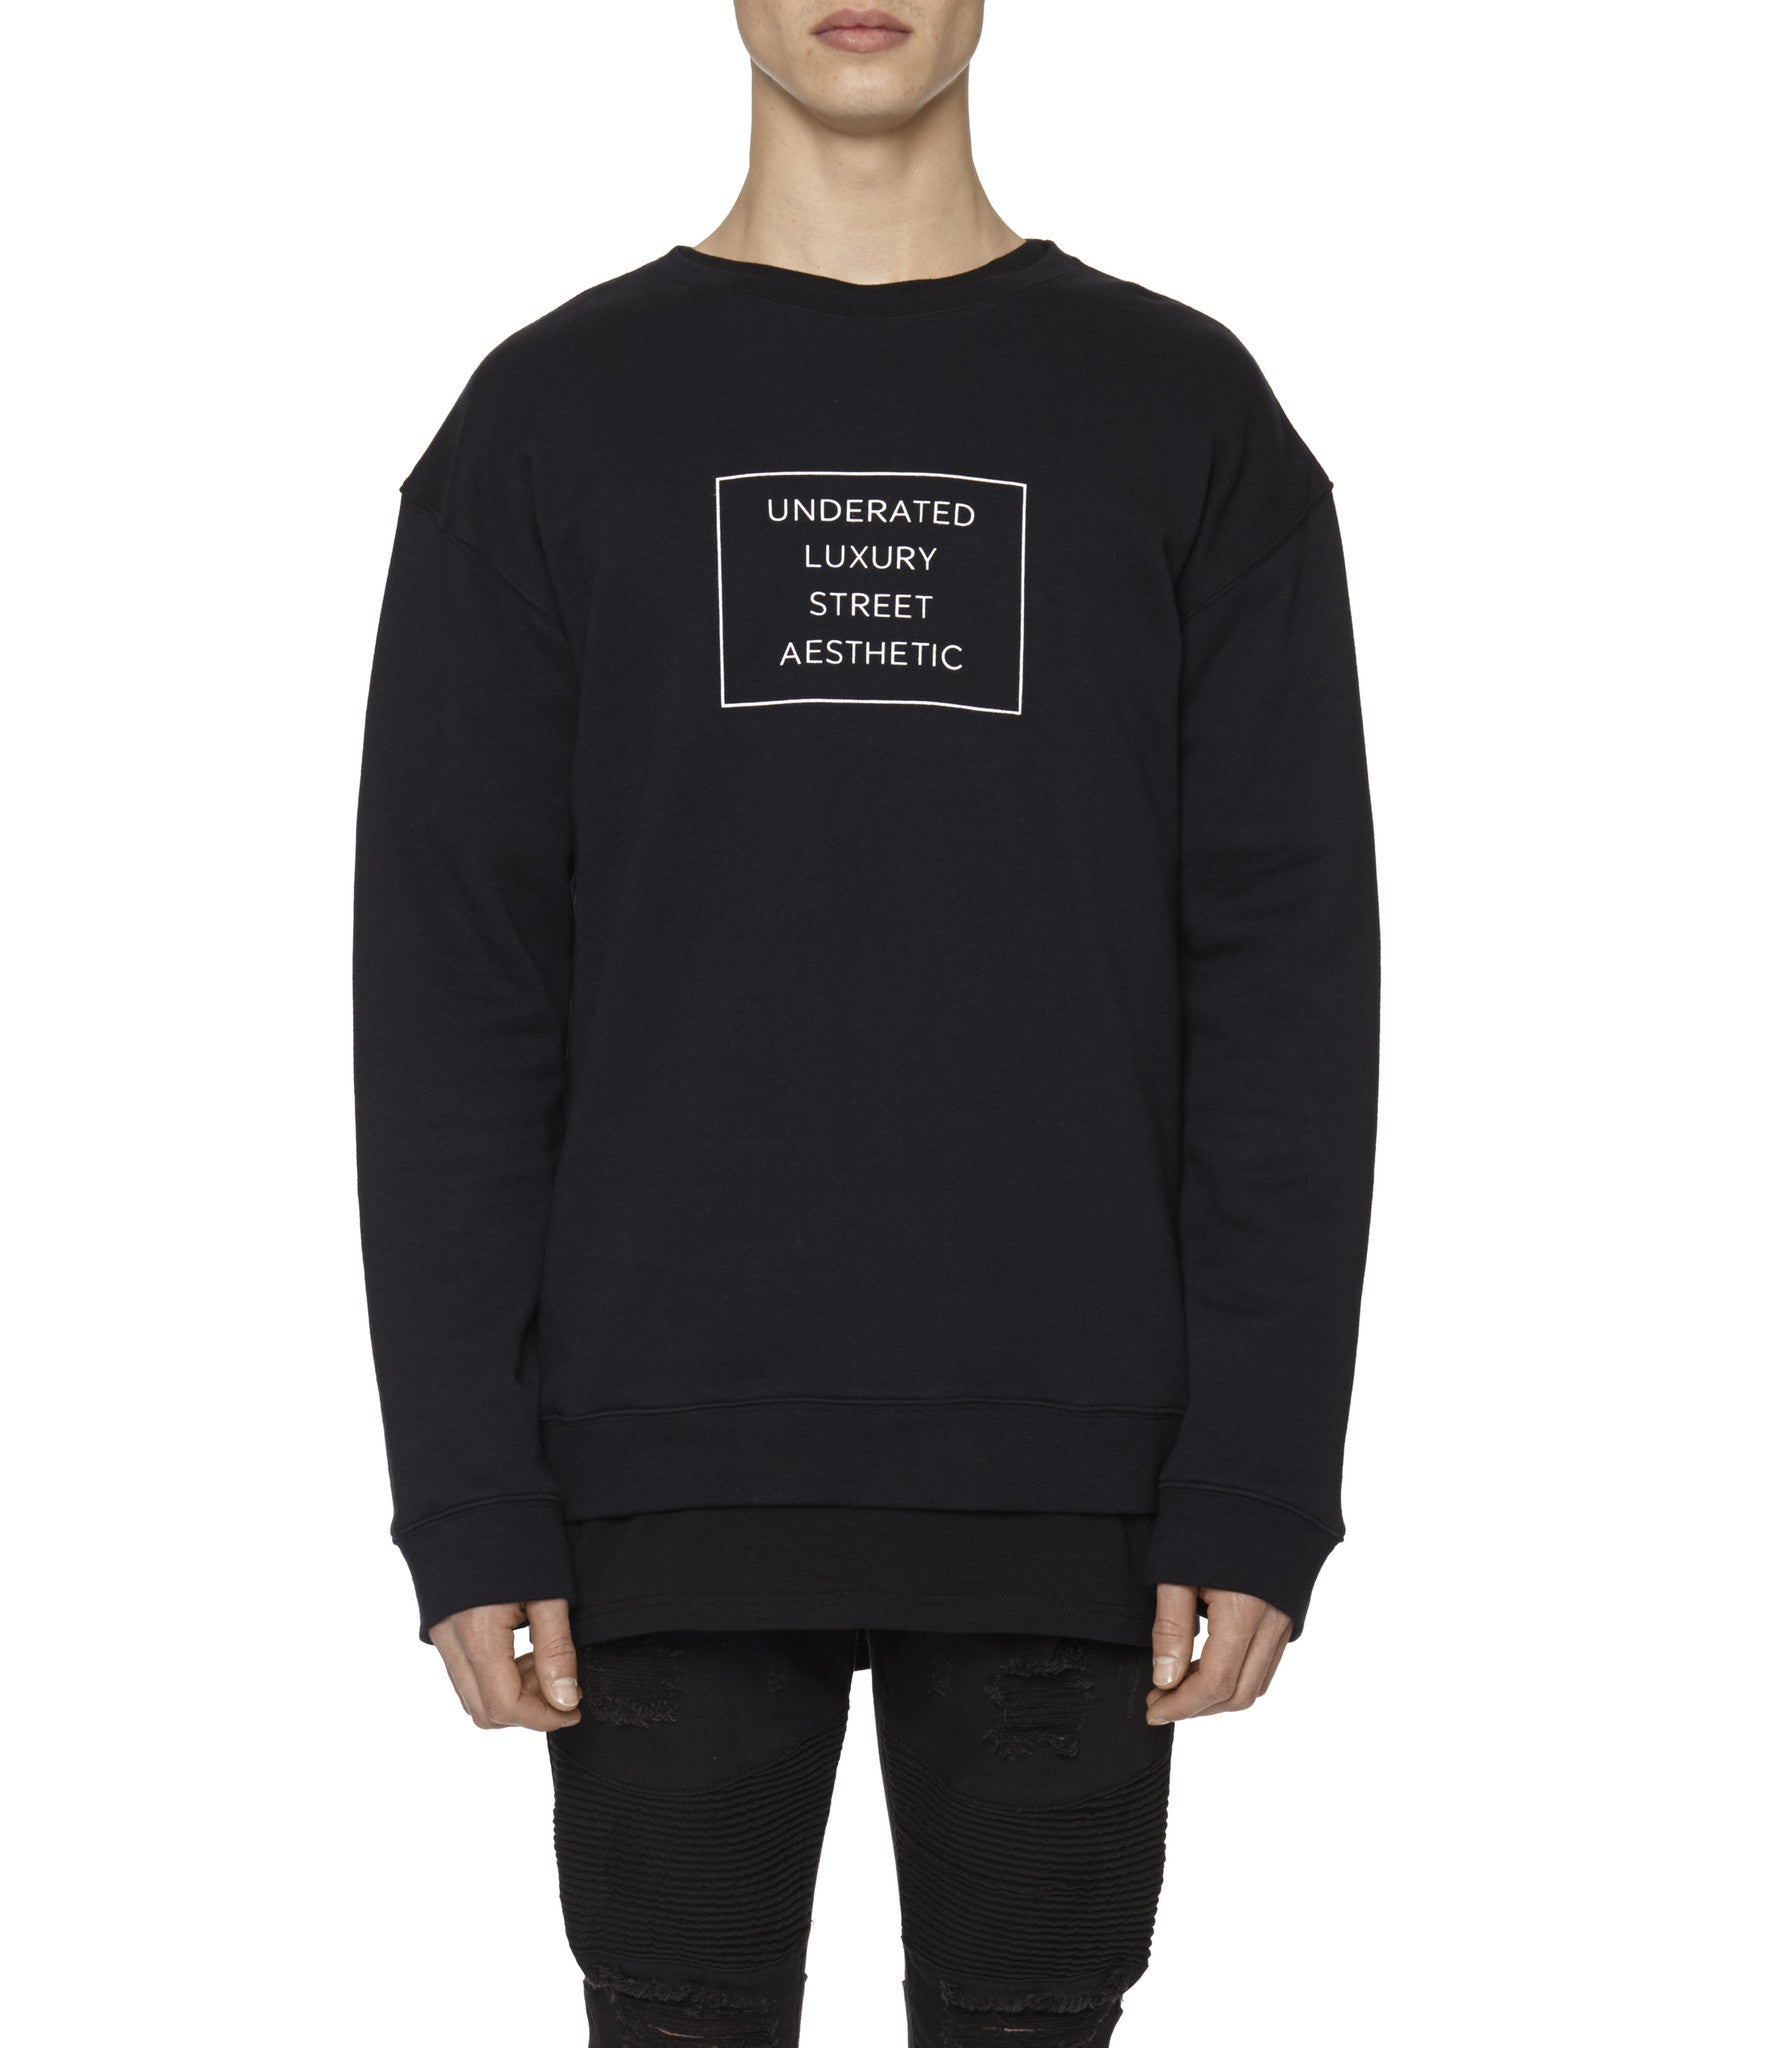 SW314 Box Logo Printed Sweatshirt - Black - underated london - underatedco - 4